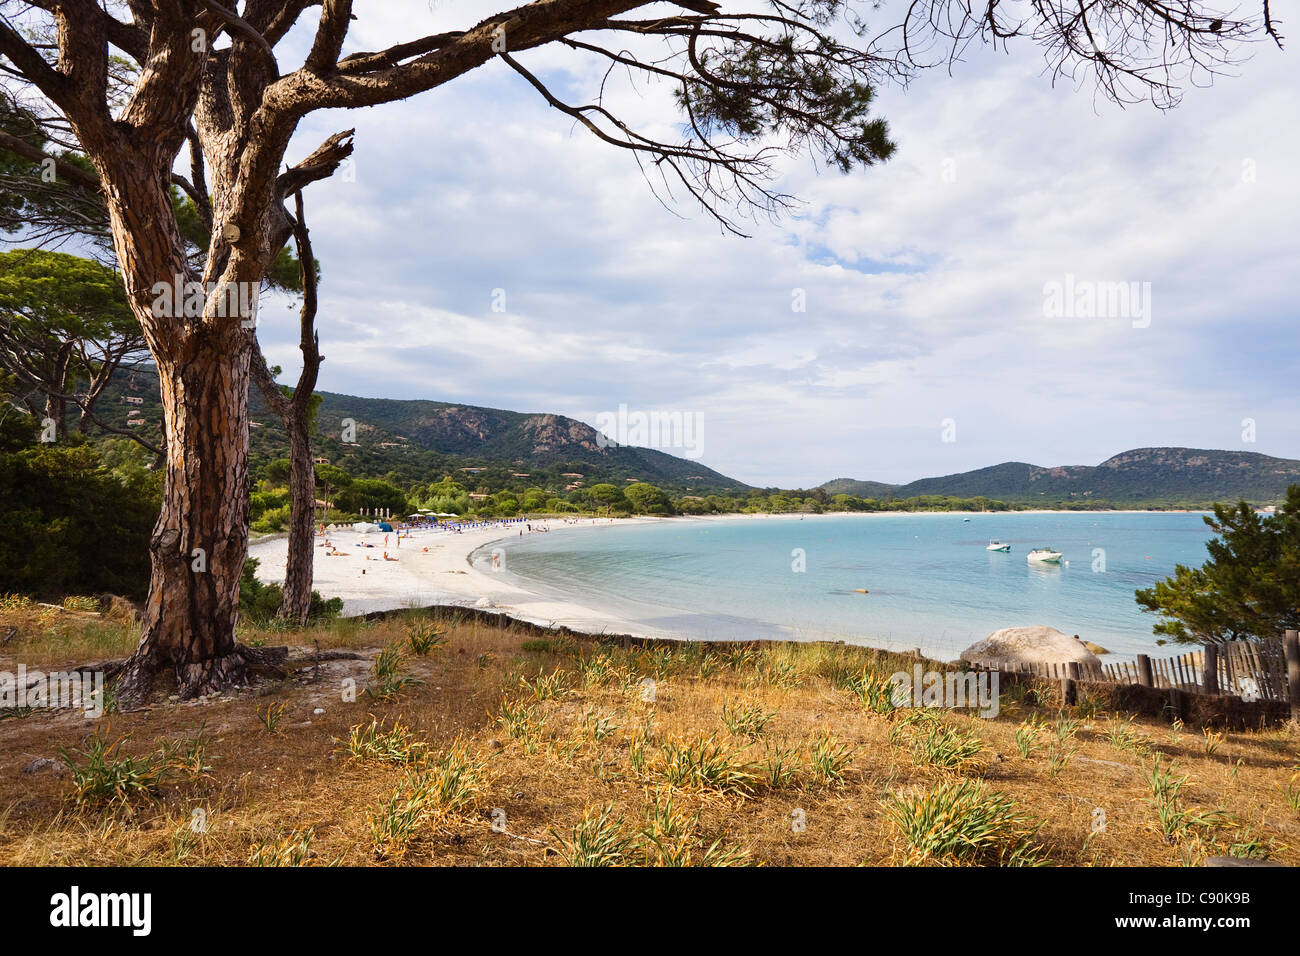 Beach of Palombaggia, sout-east coast, Corsica, France, Europe - Stock Image